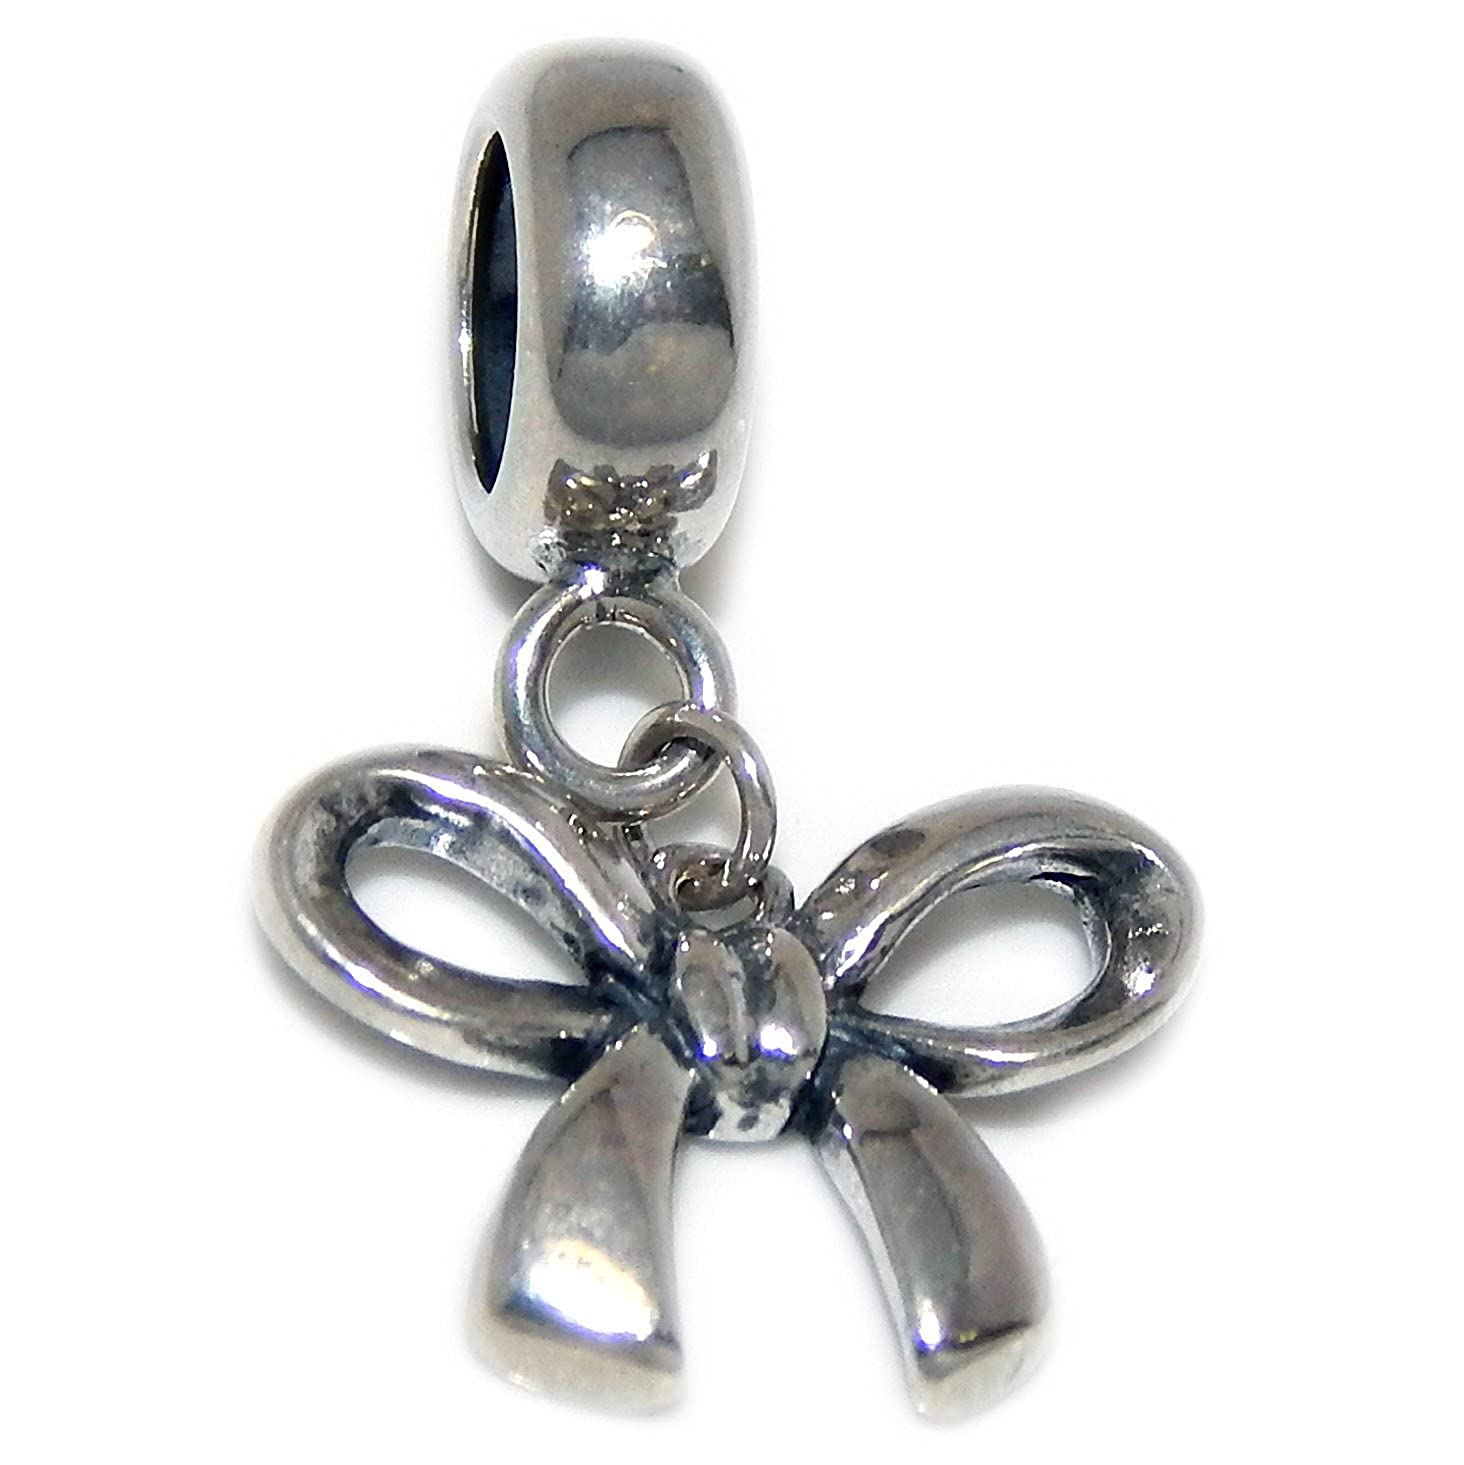 Solid 925 Sterling Silver Dangling Bow Charm Bead